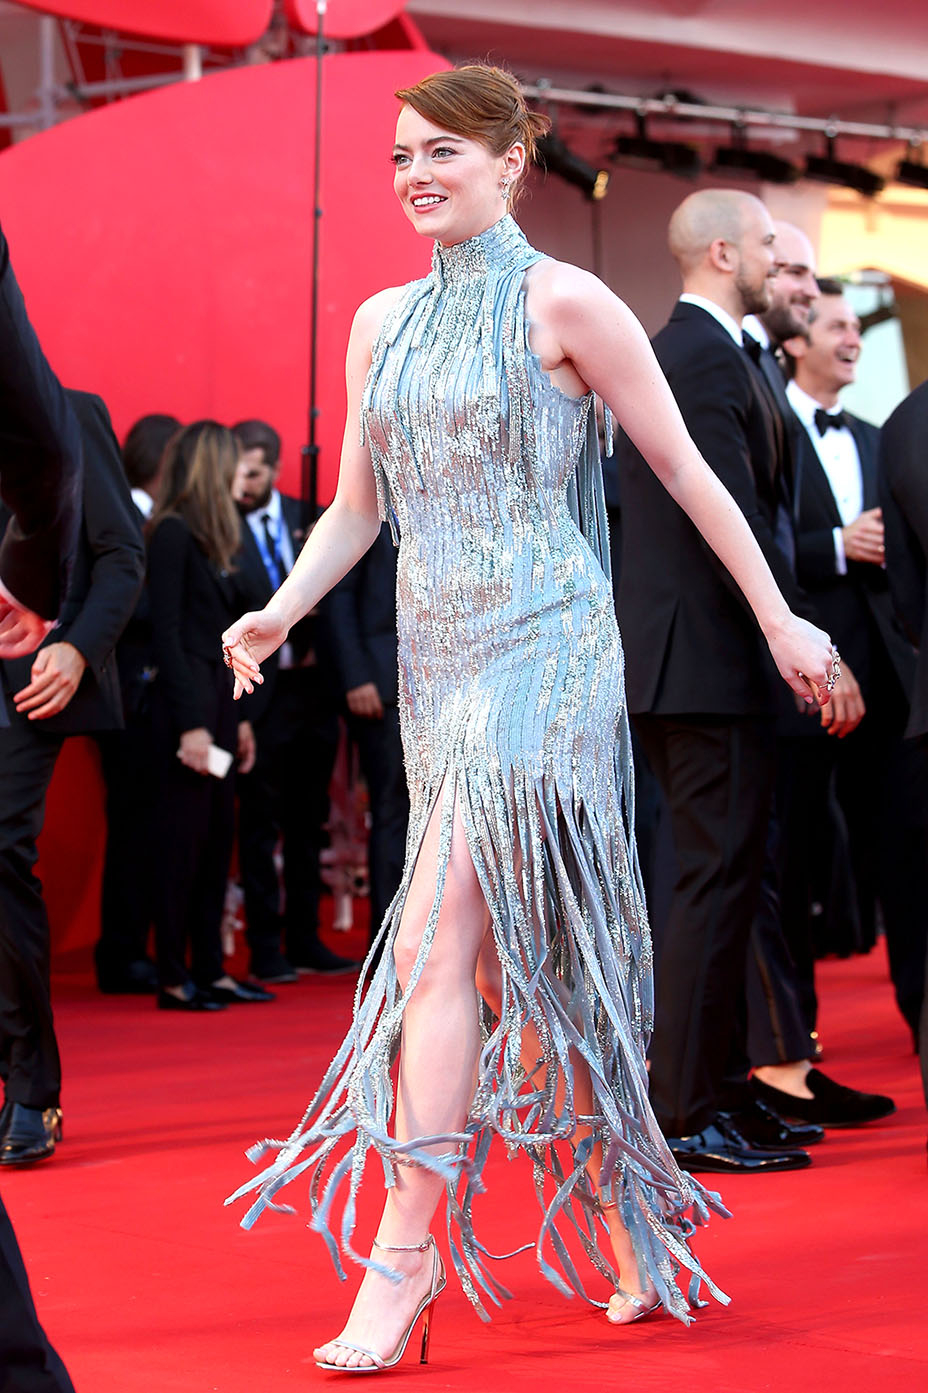 GettyImages-598112200-EMBED.jpg